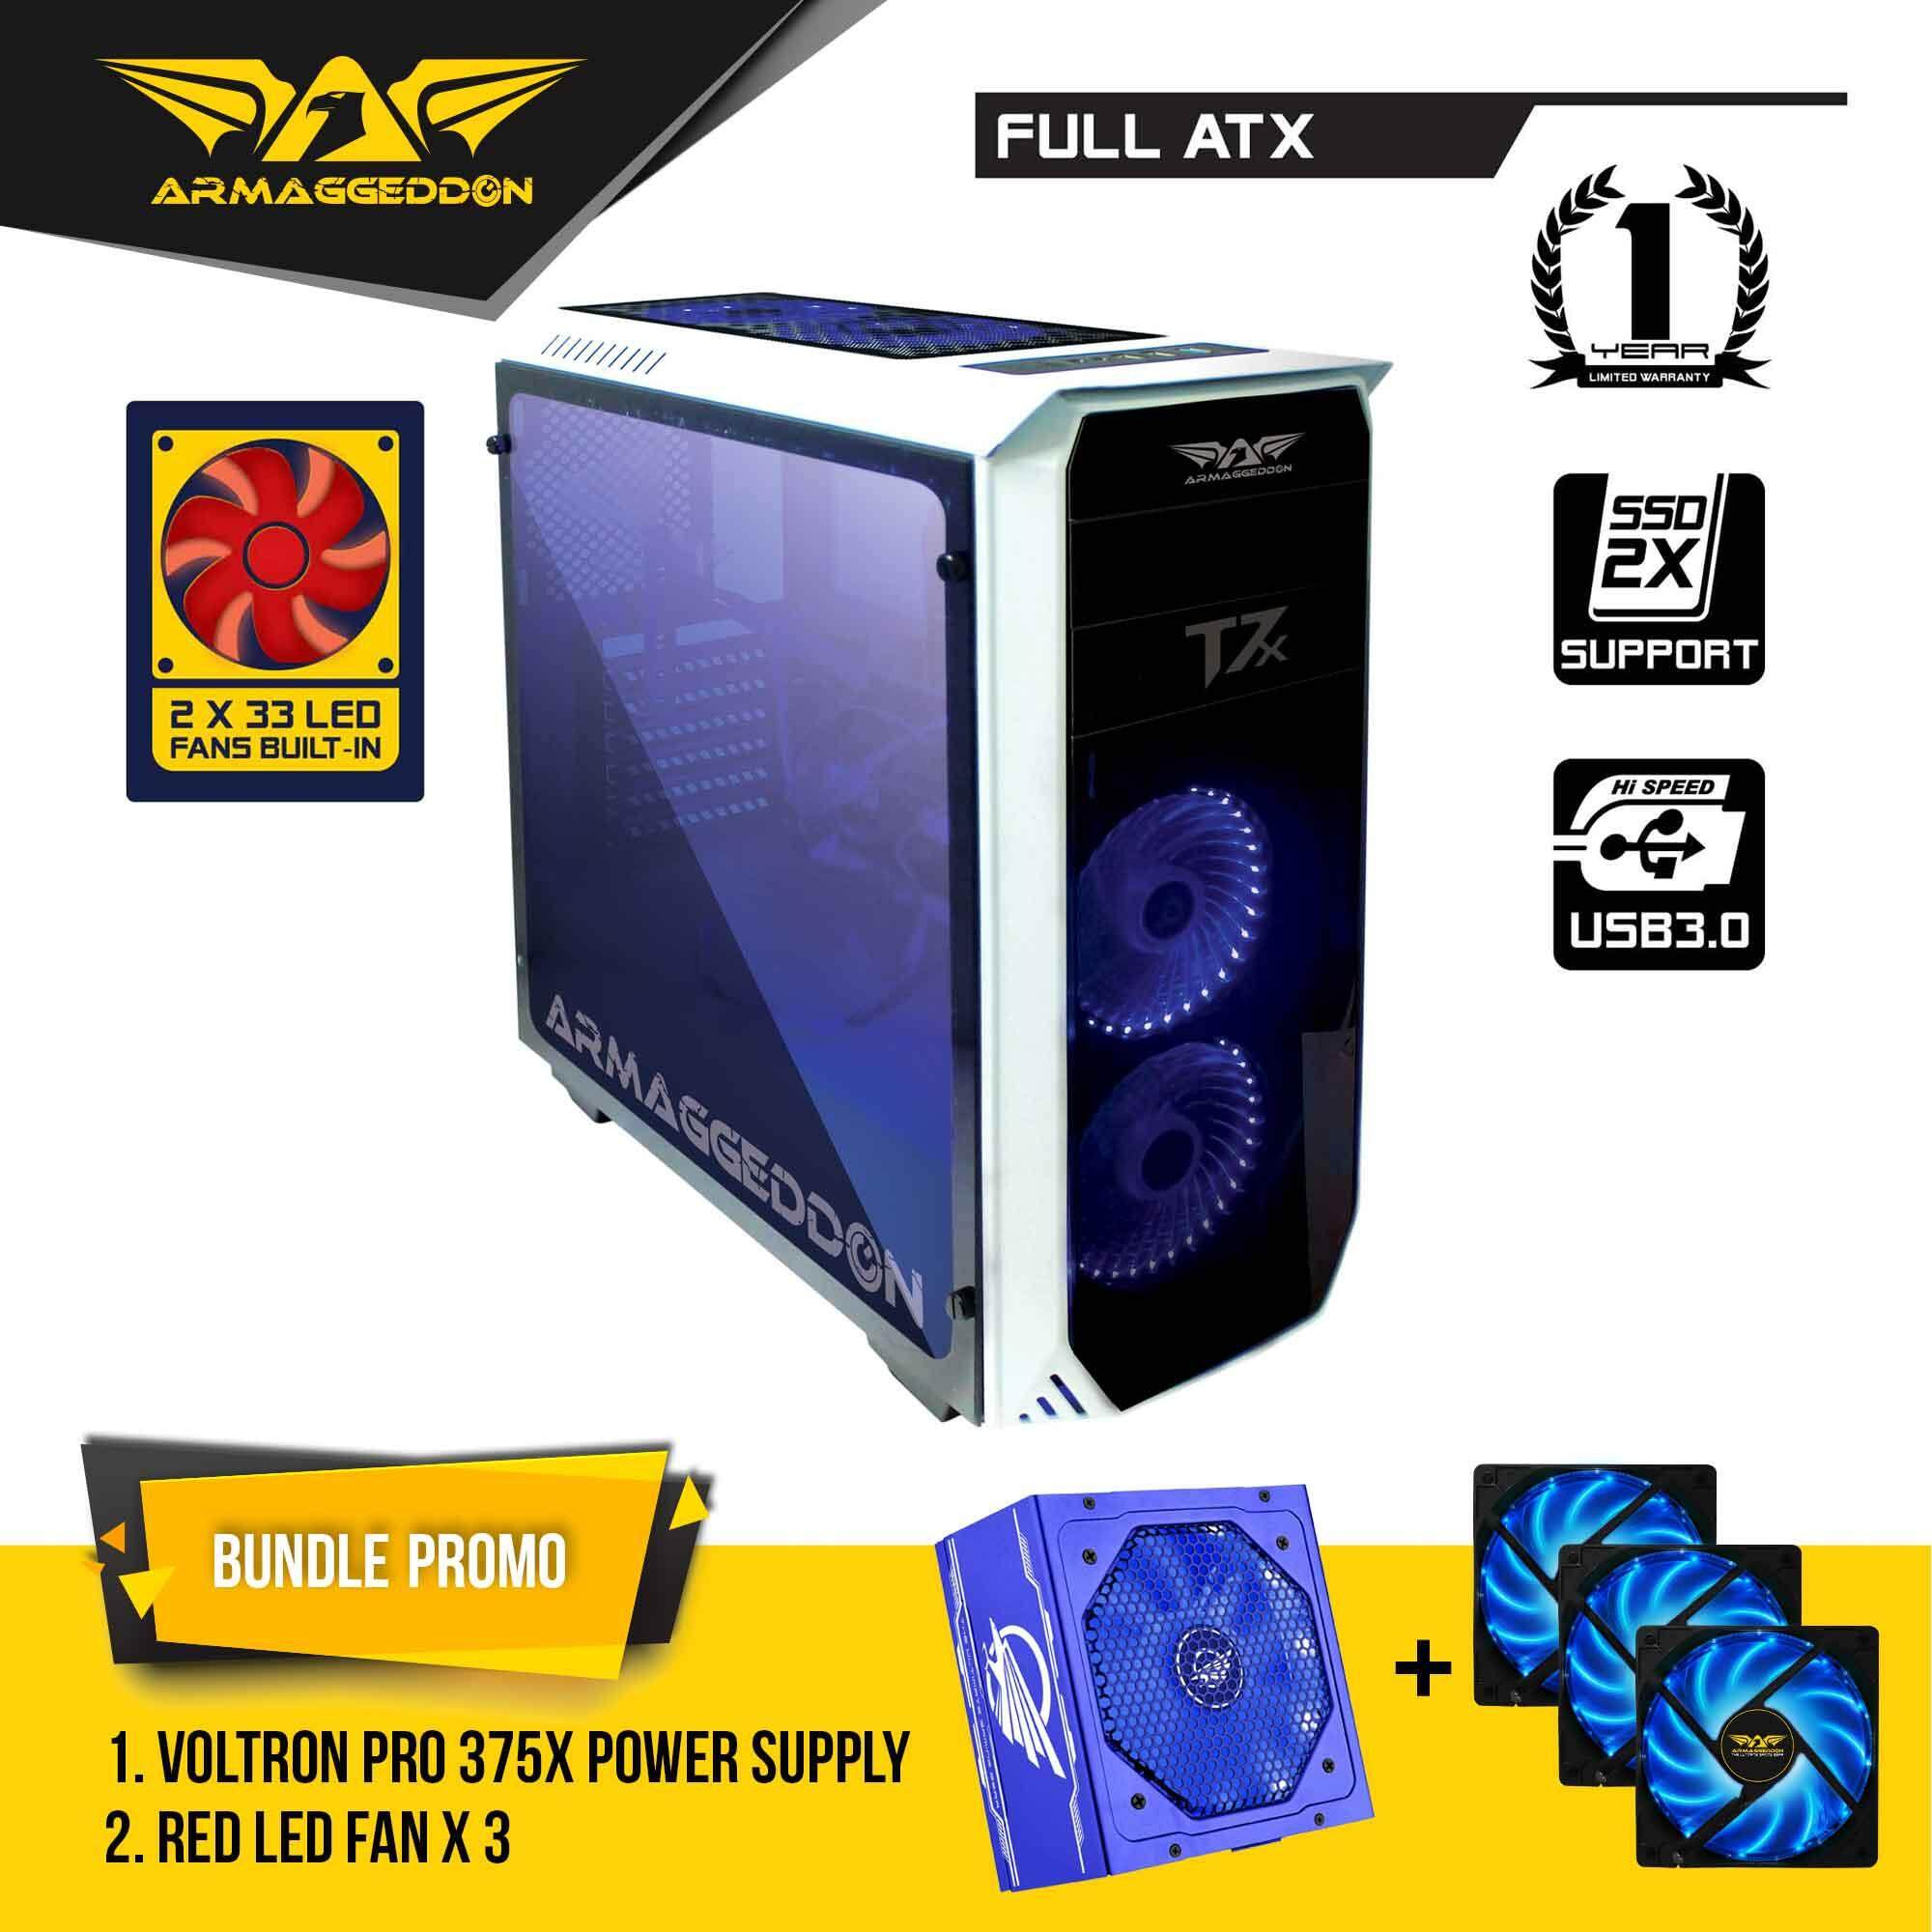 Armaggeddon T7x Full ATX Gaming PC Case with Voltron Pro Power Supply and Cooling Fan Bundle Promo Malaysia